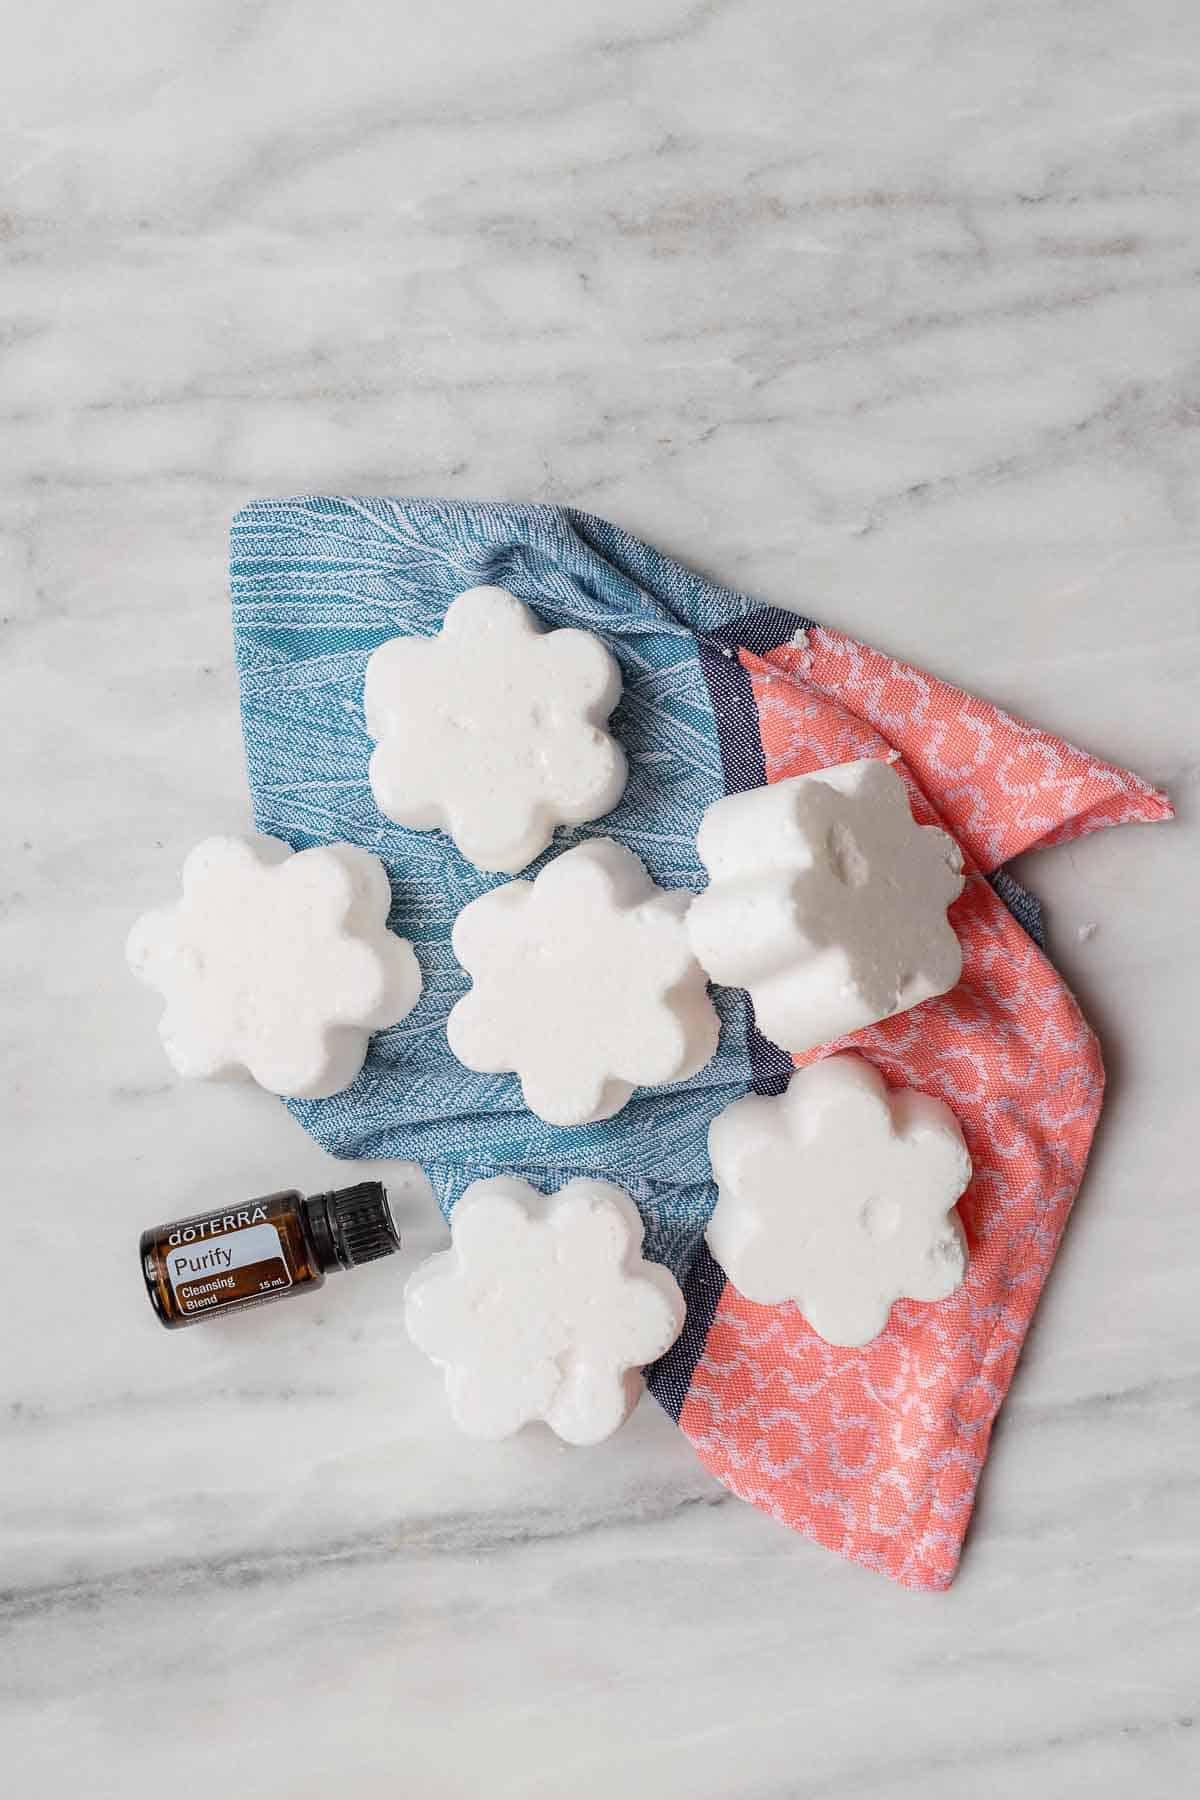 Who knew that cleaning the toilet could be fun?! With these DIY Toilet Cleaning Bombs, cleaning the toilet will be one of the best chores in the house.